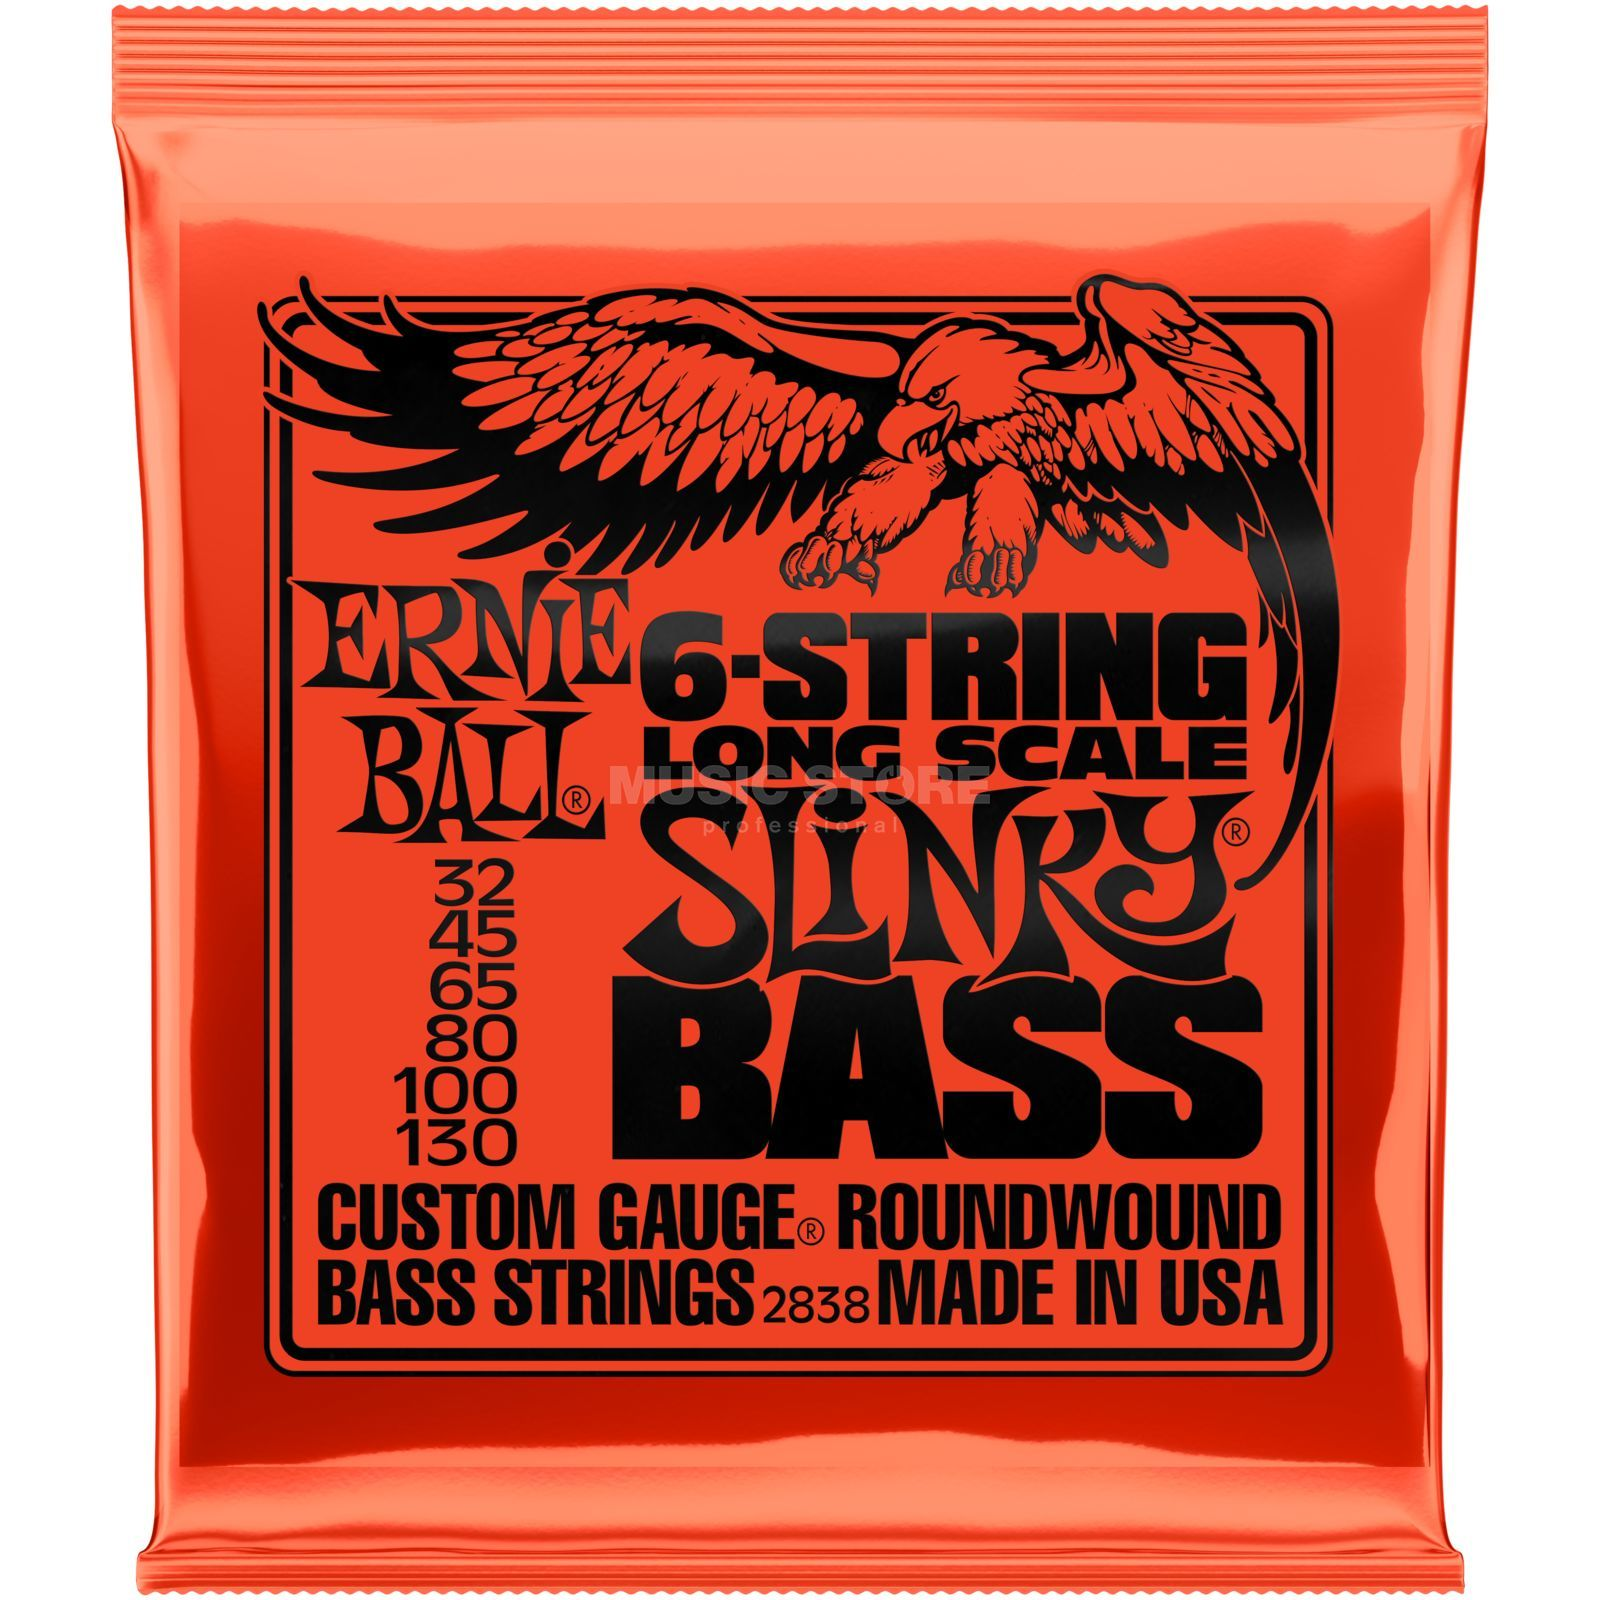 Ernie Ball EB2838 32-130 6-string Regular Slinky Longscale Nickel Plated Produktbild